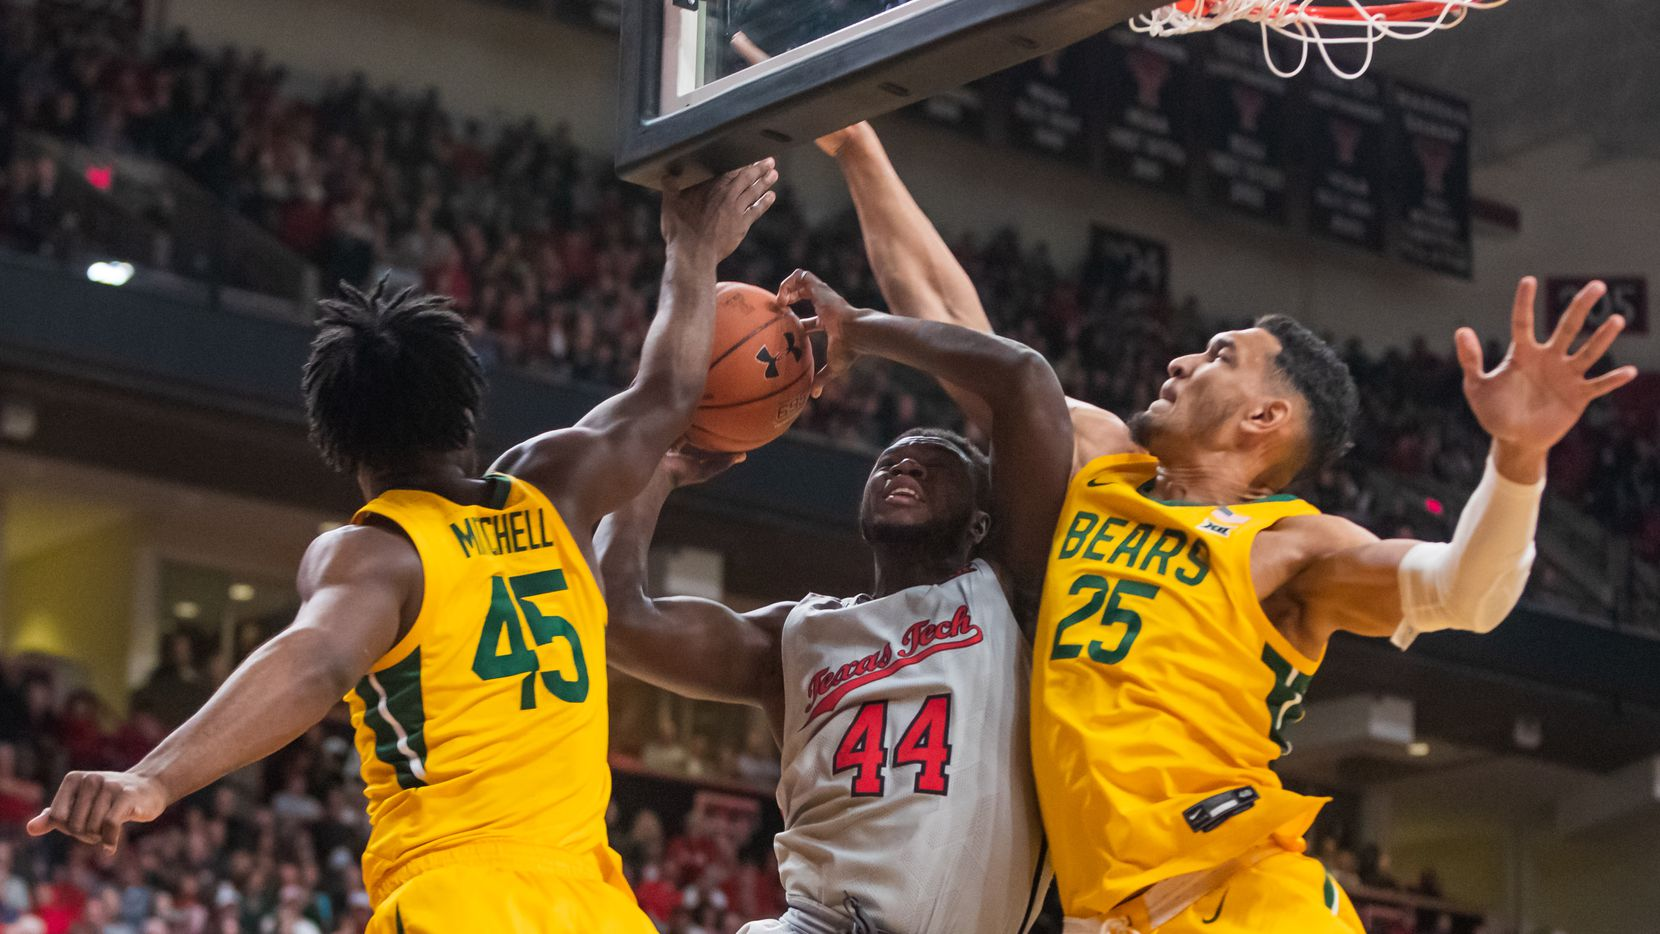 Texas Tech Red Raiders vs Baylor Bears Prediction